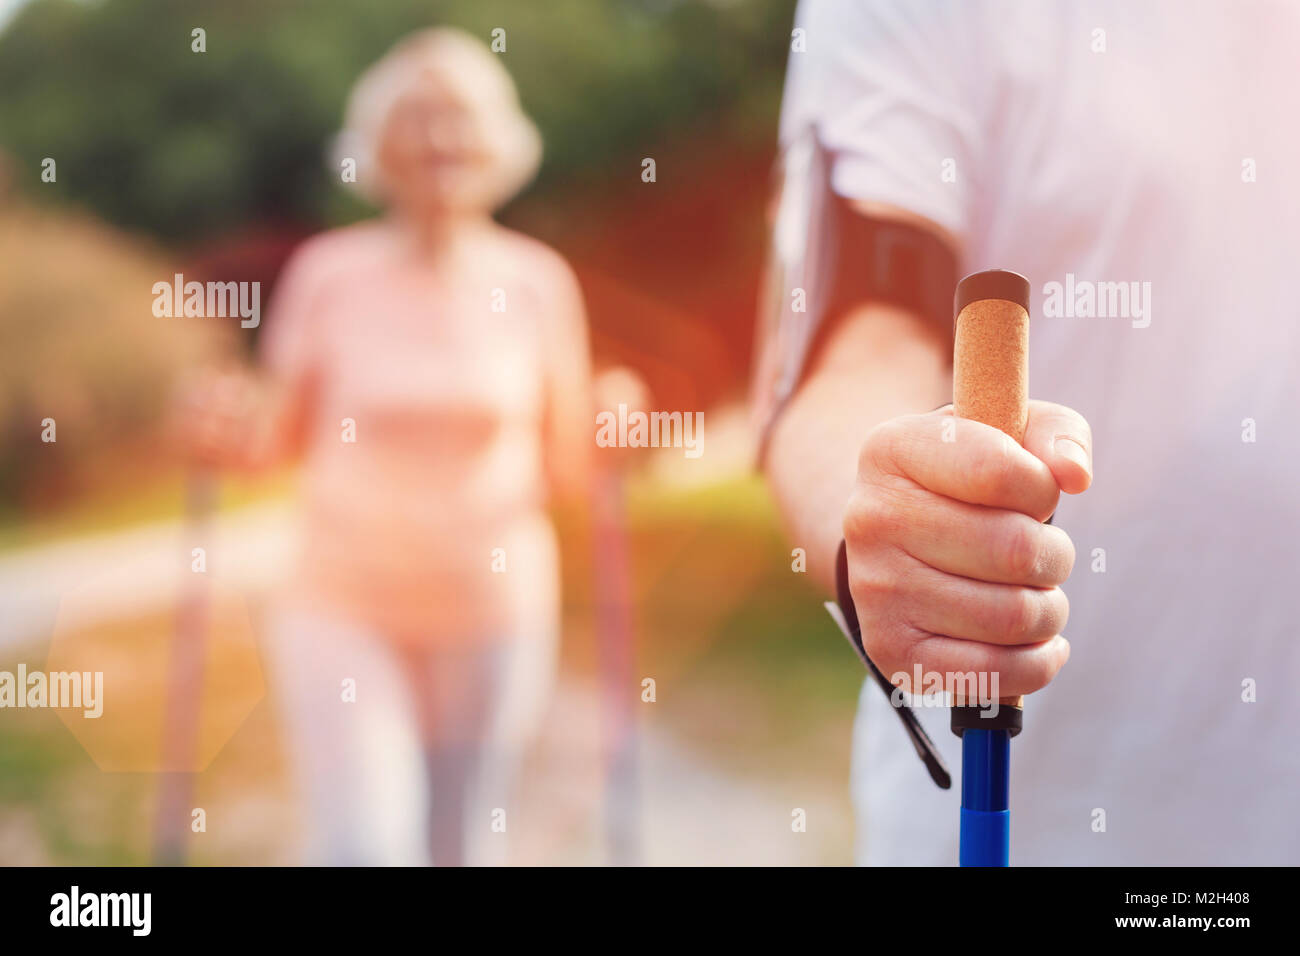 Close up of elderly man holding a crutch - Stock Image